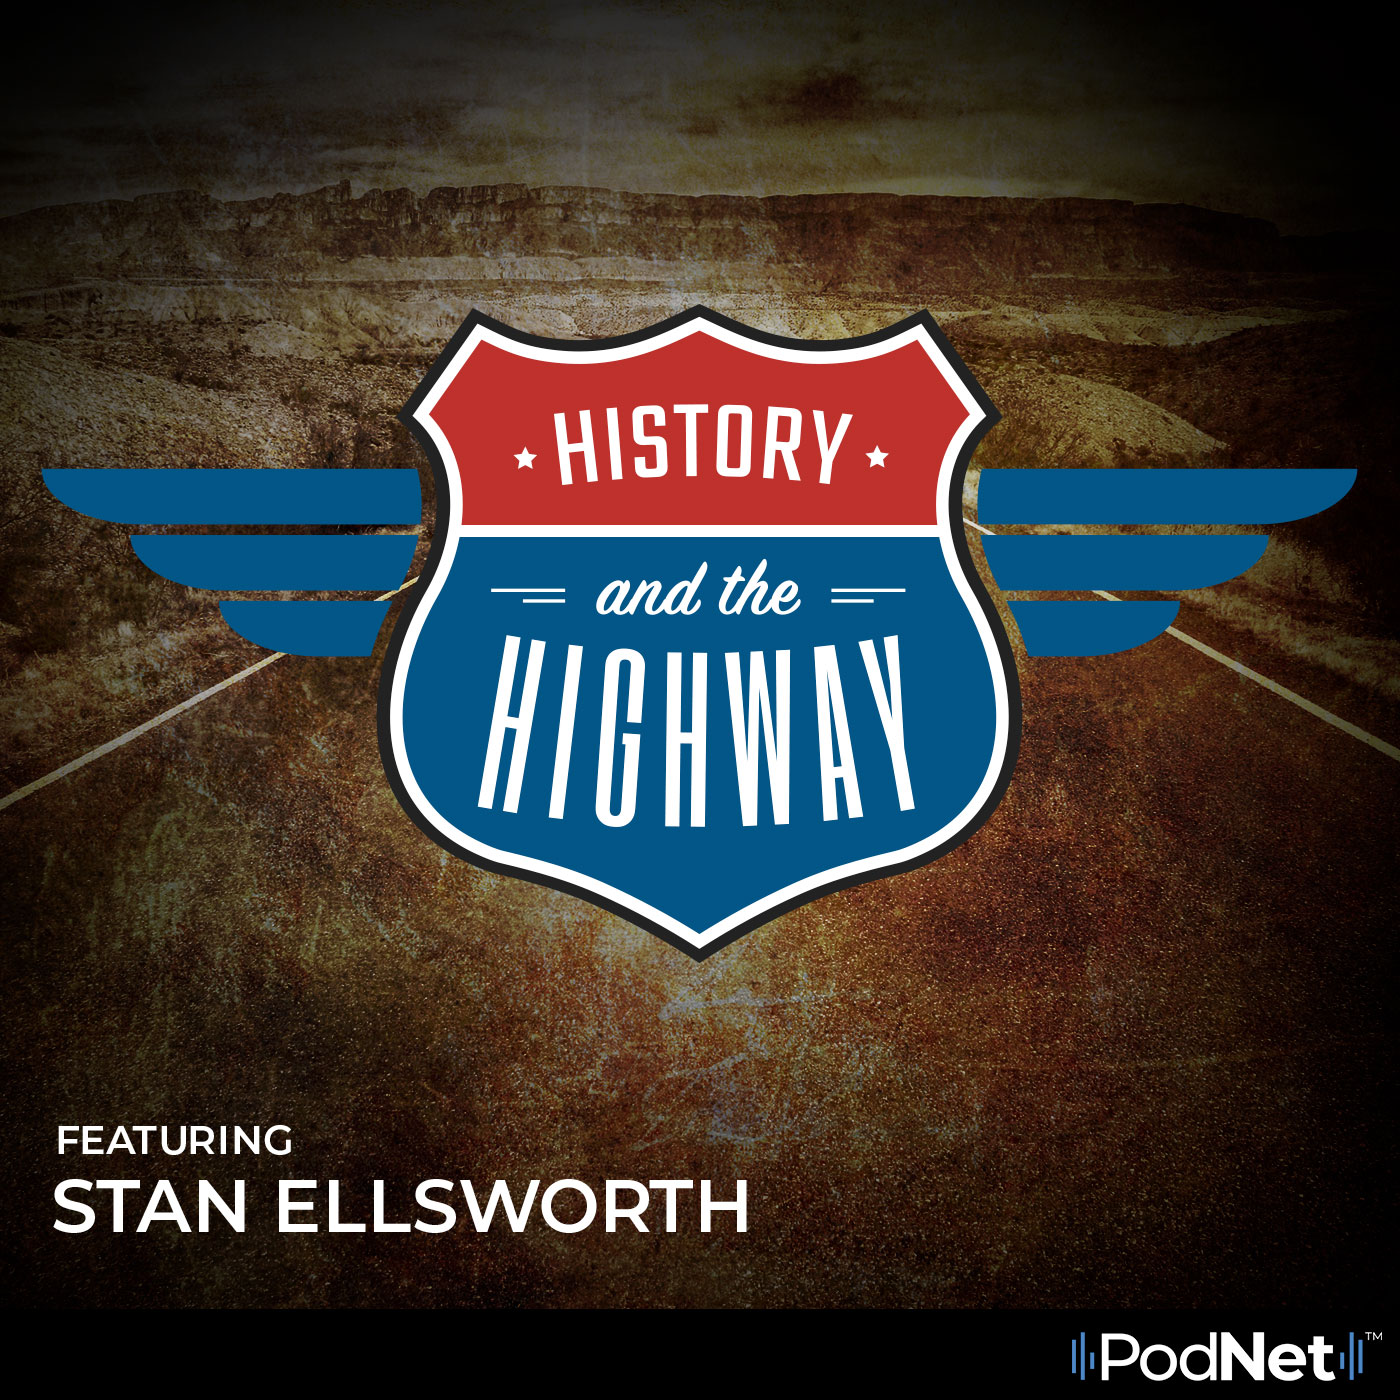 History and the Highway